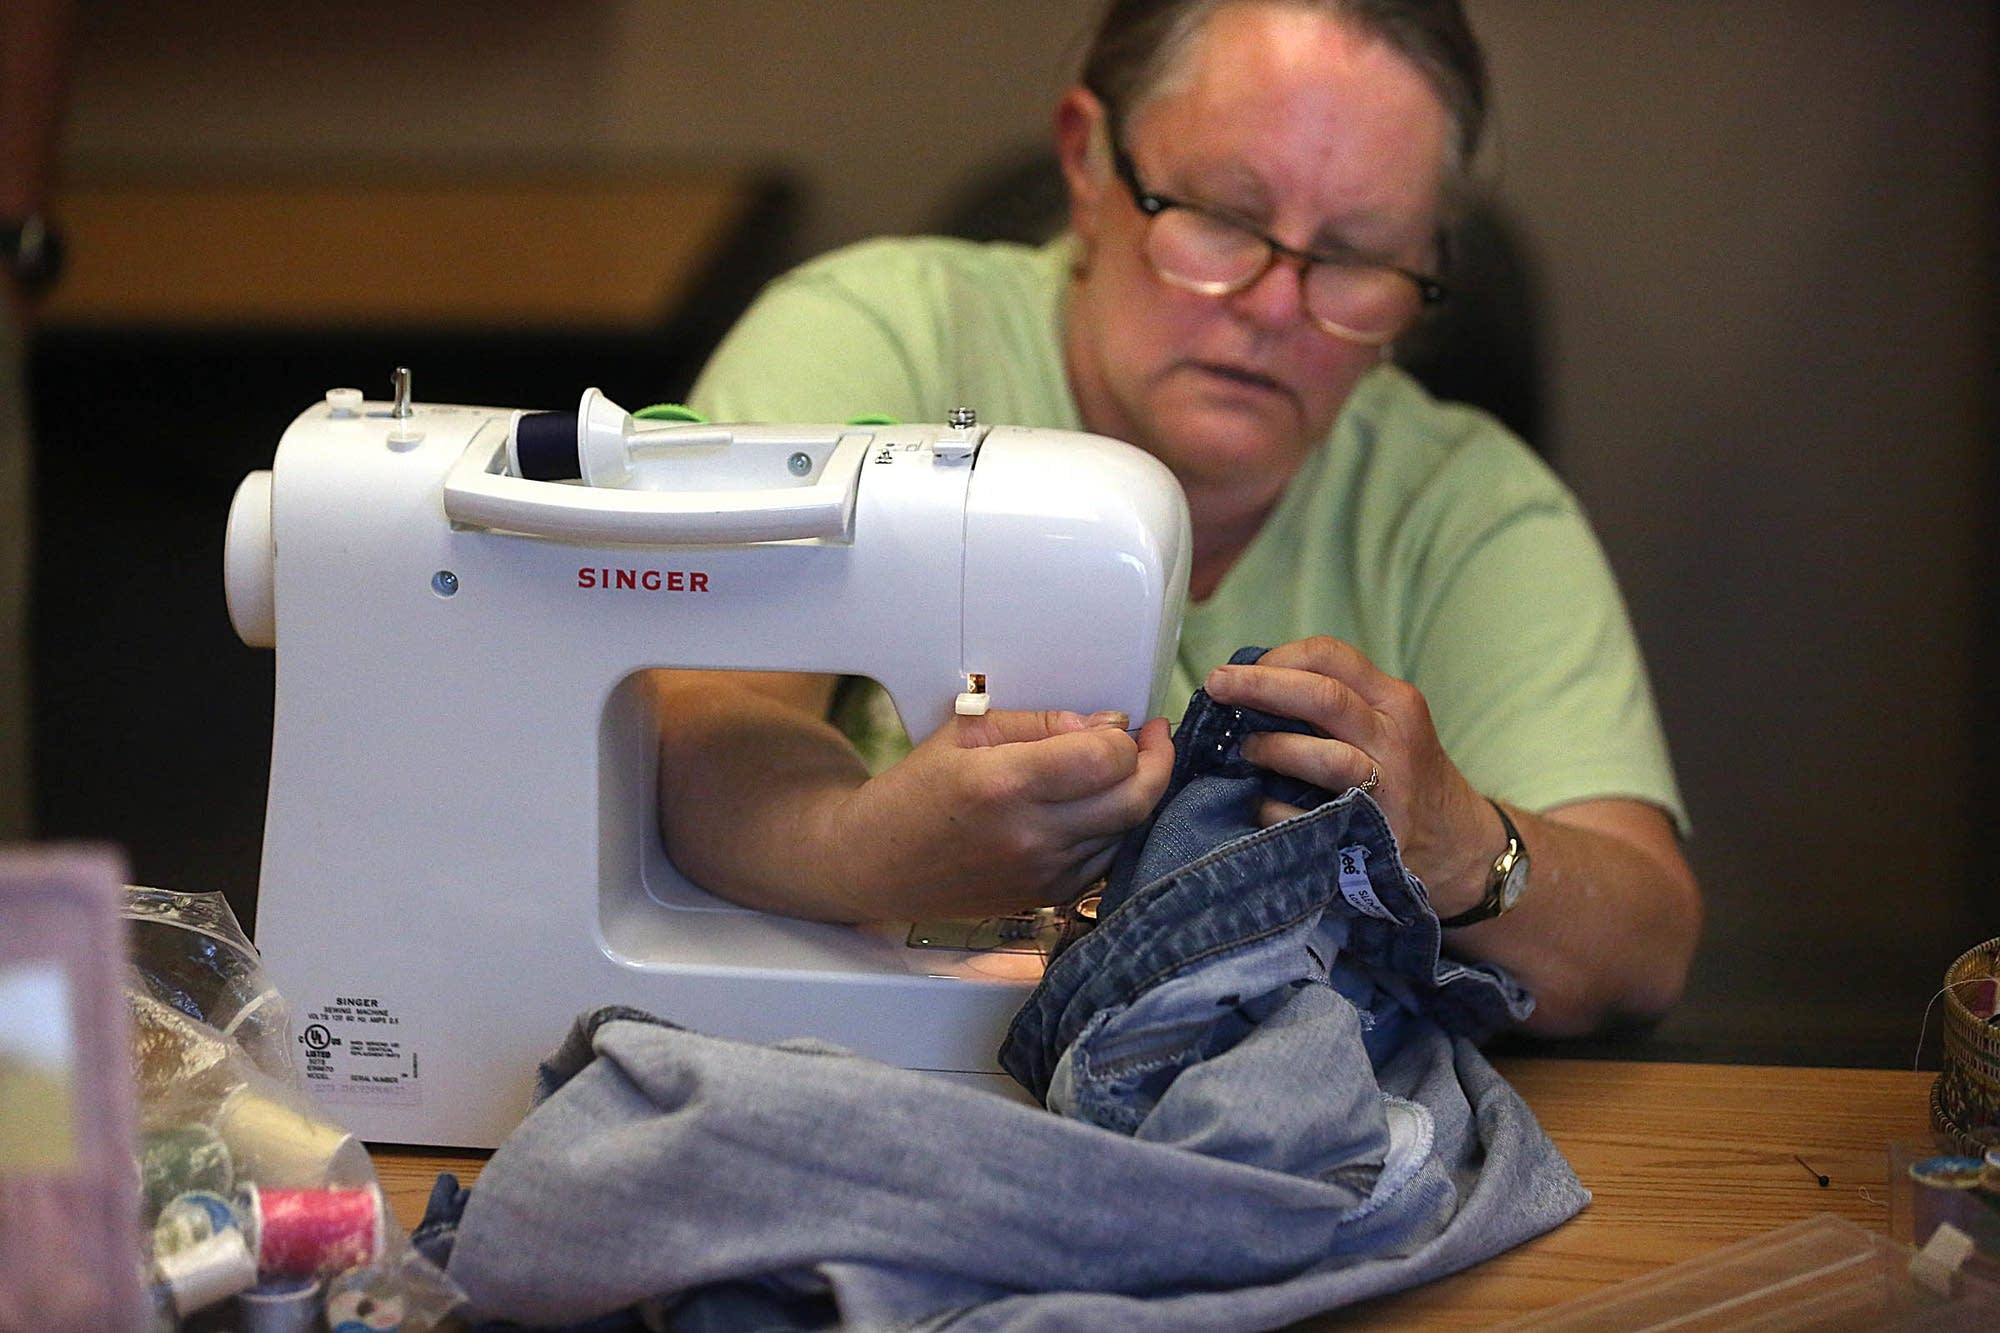 Cathy Jensen, Hudson, mends a pair of jeans.